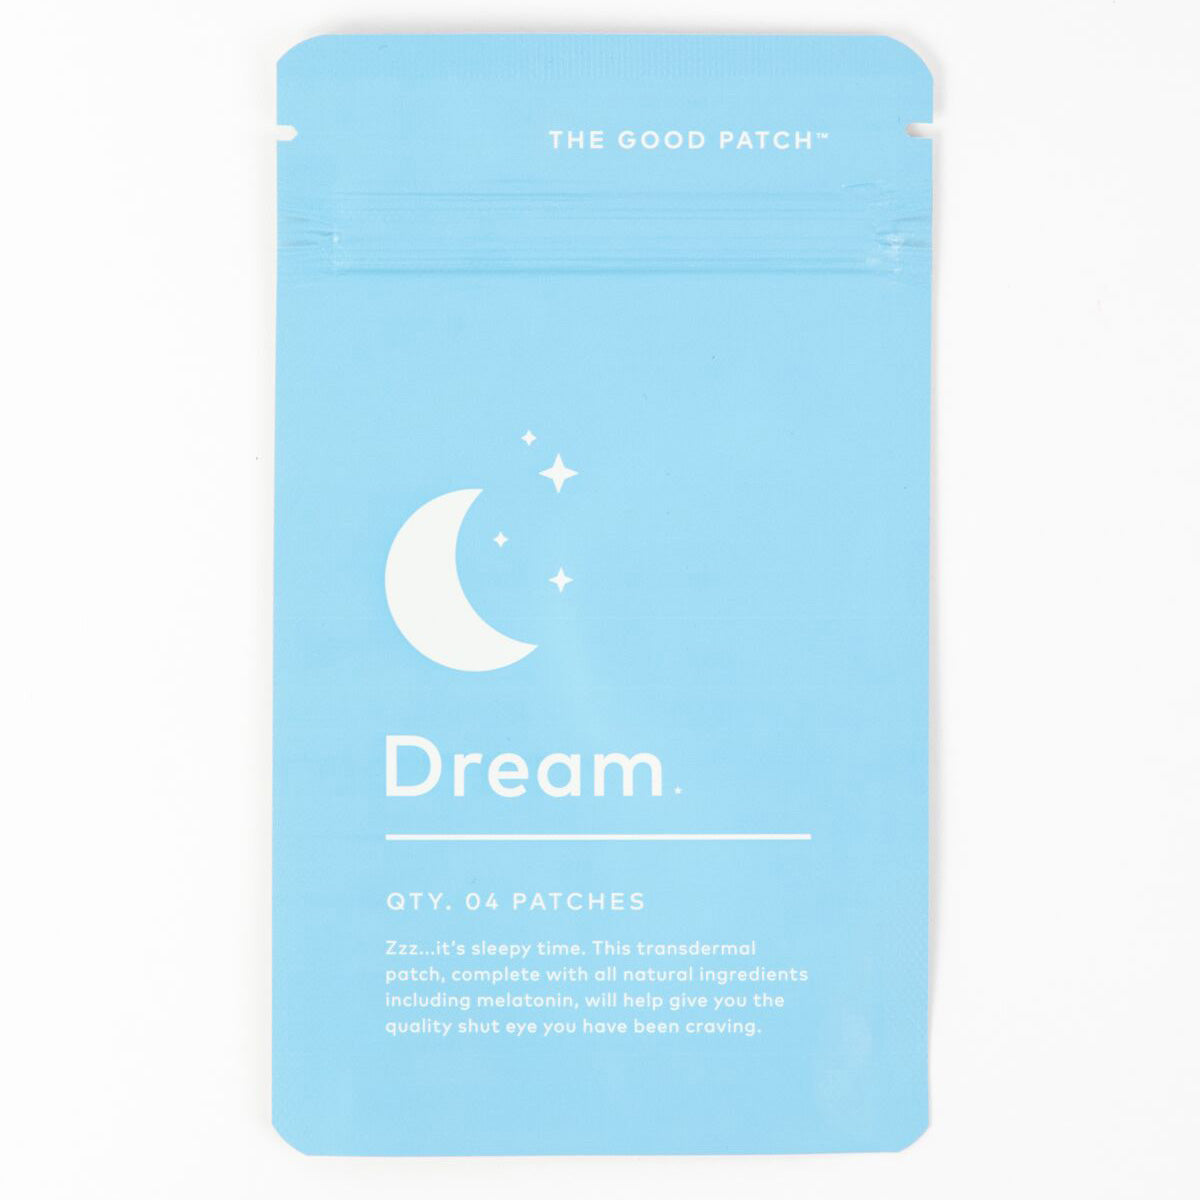 The Good Patch Dream - Travel PAKT